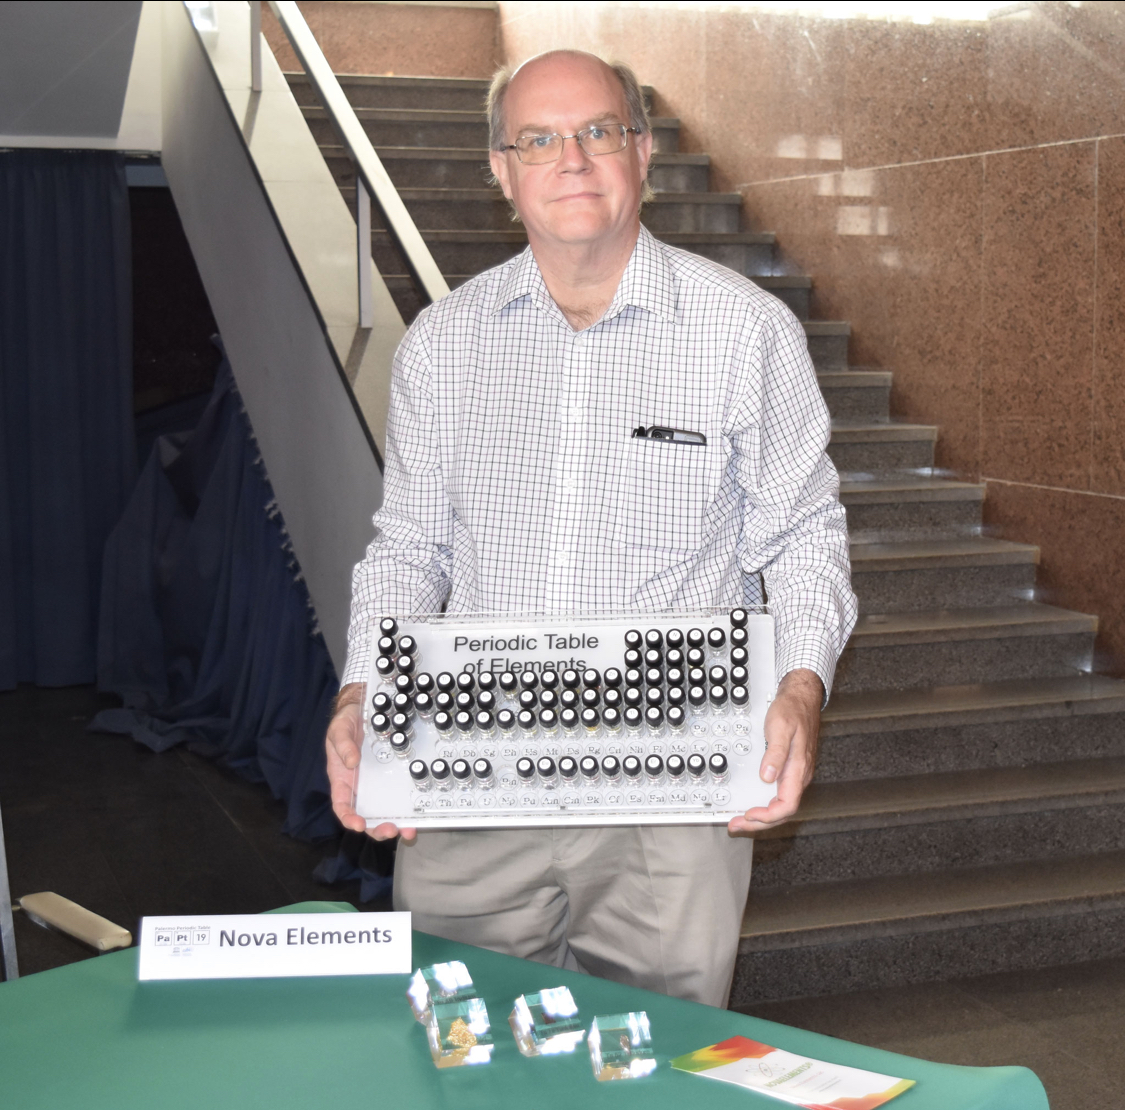 Theodore Gray likes NovaElements Portable Periodic Table